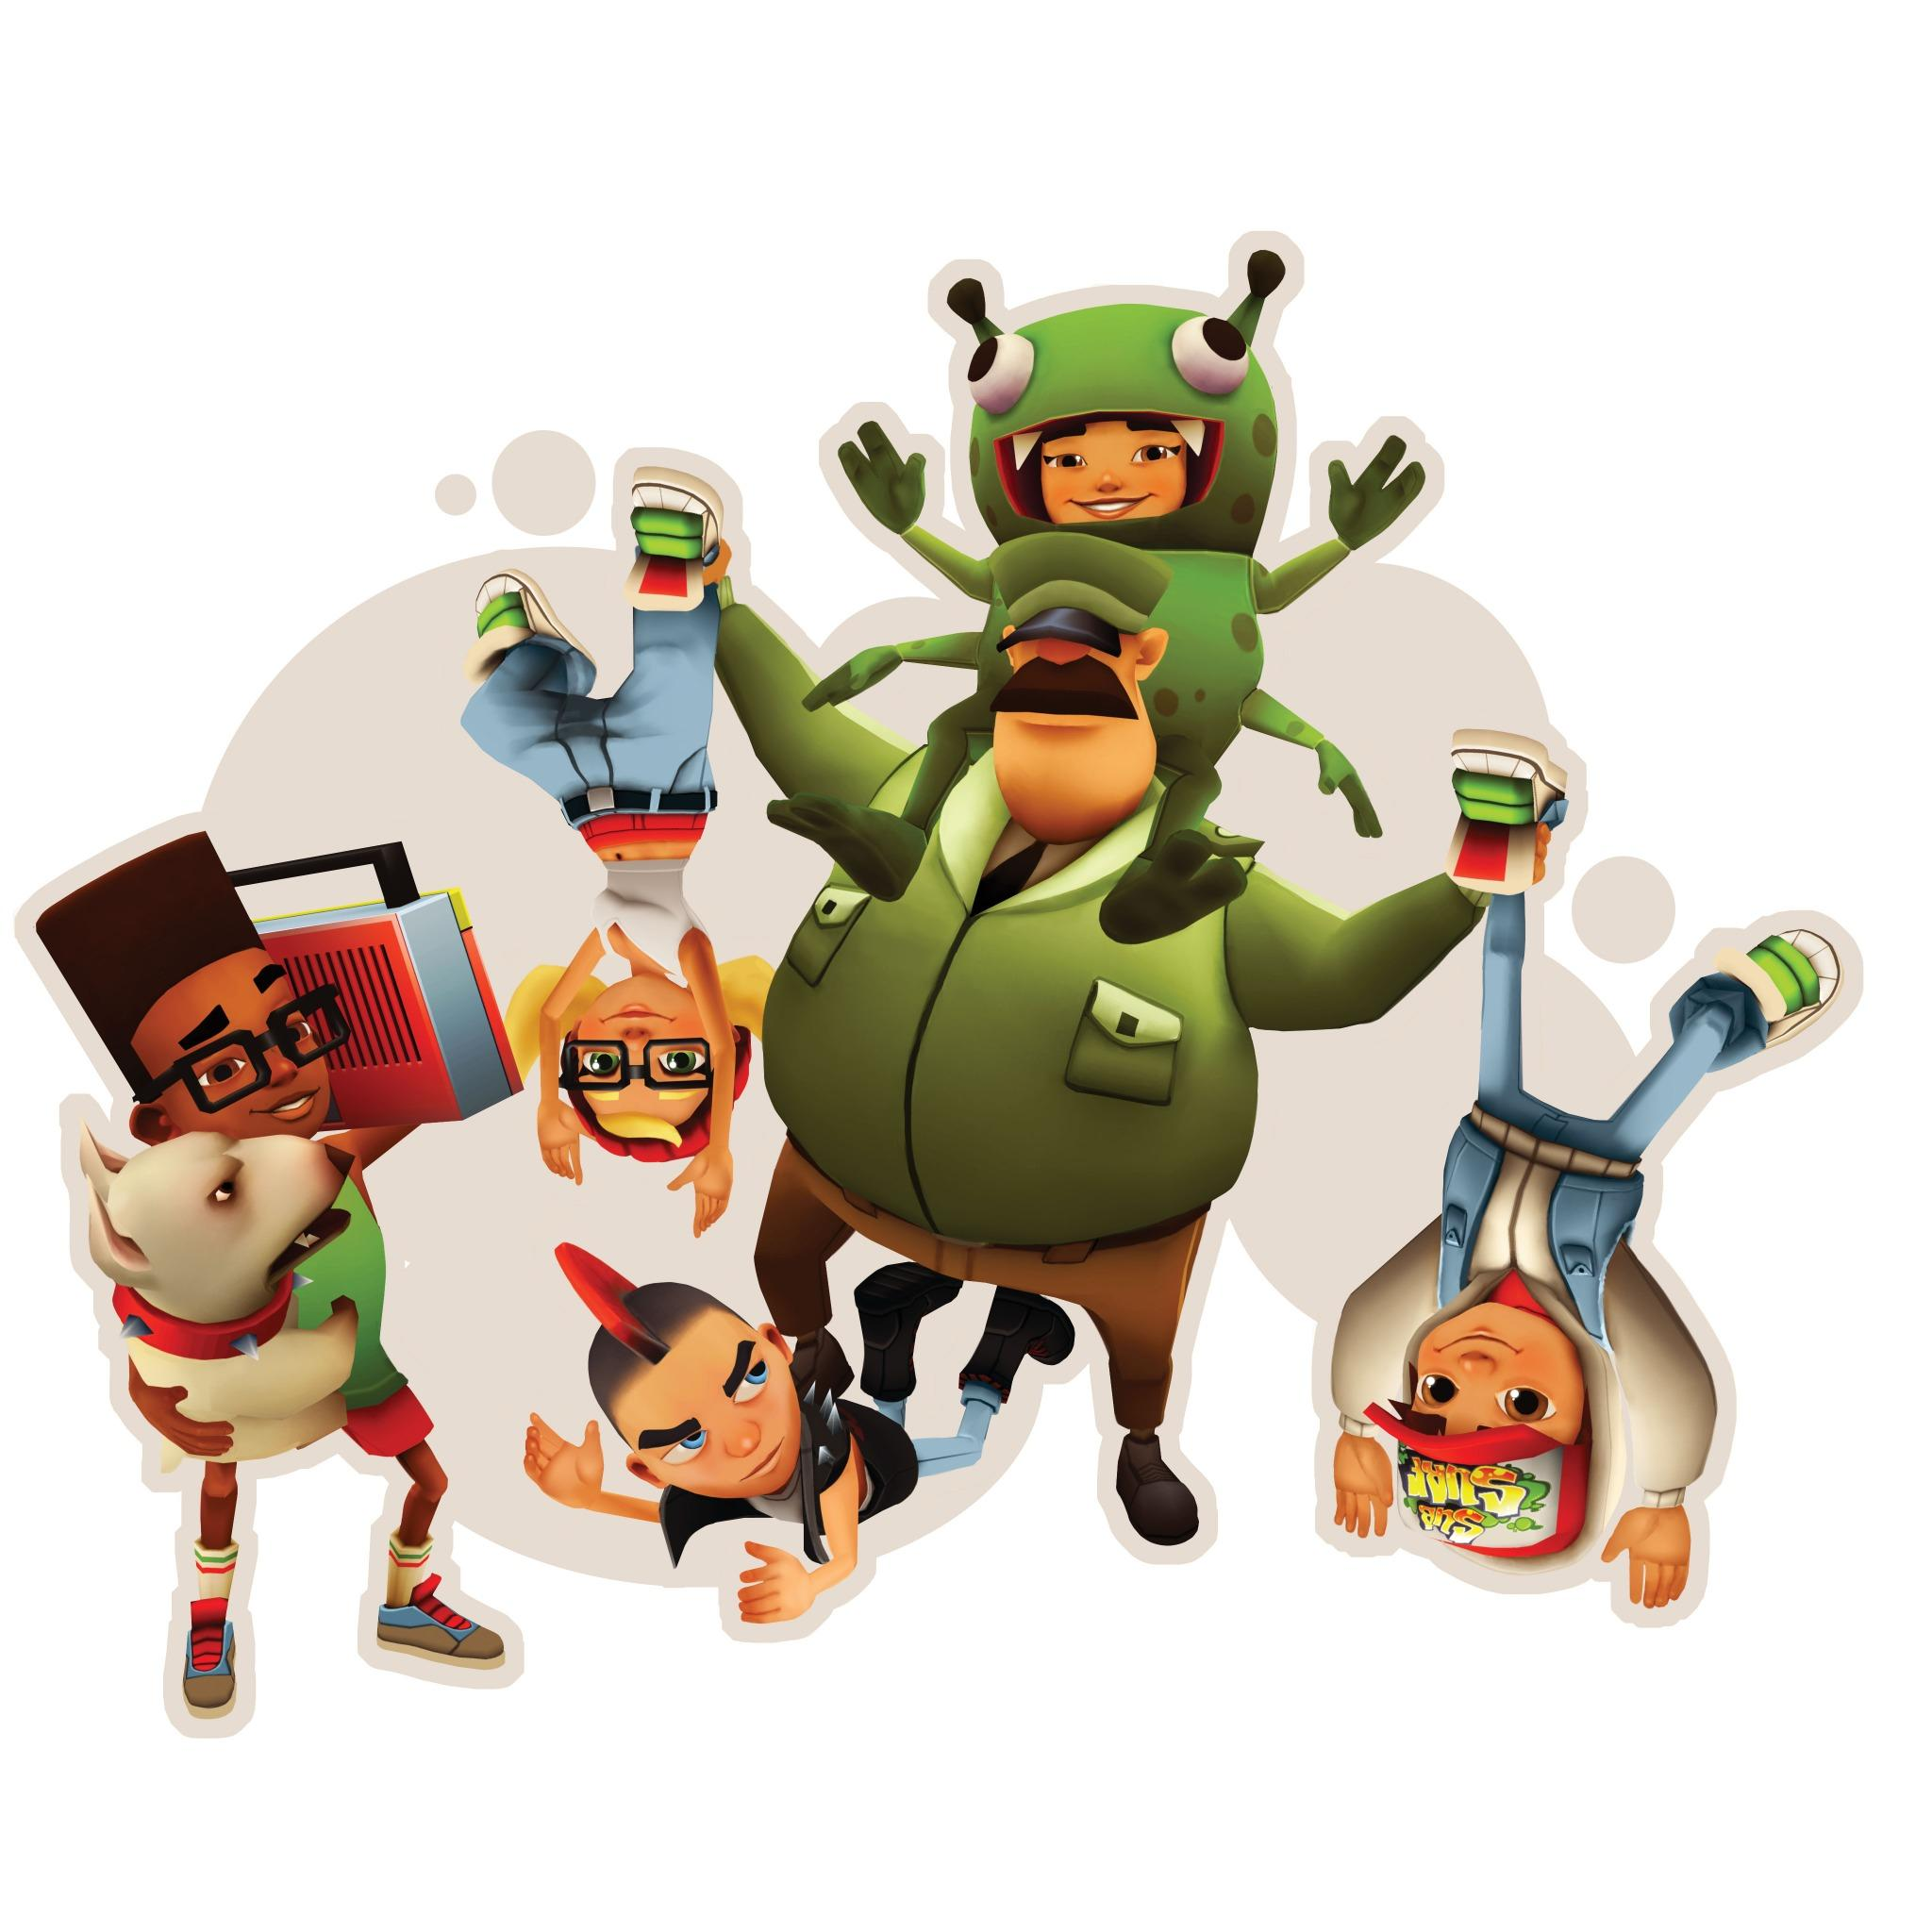 Sybo games sybogames twitter - Subway surfers wiki ...